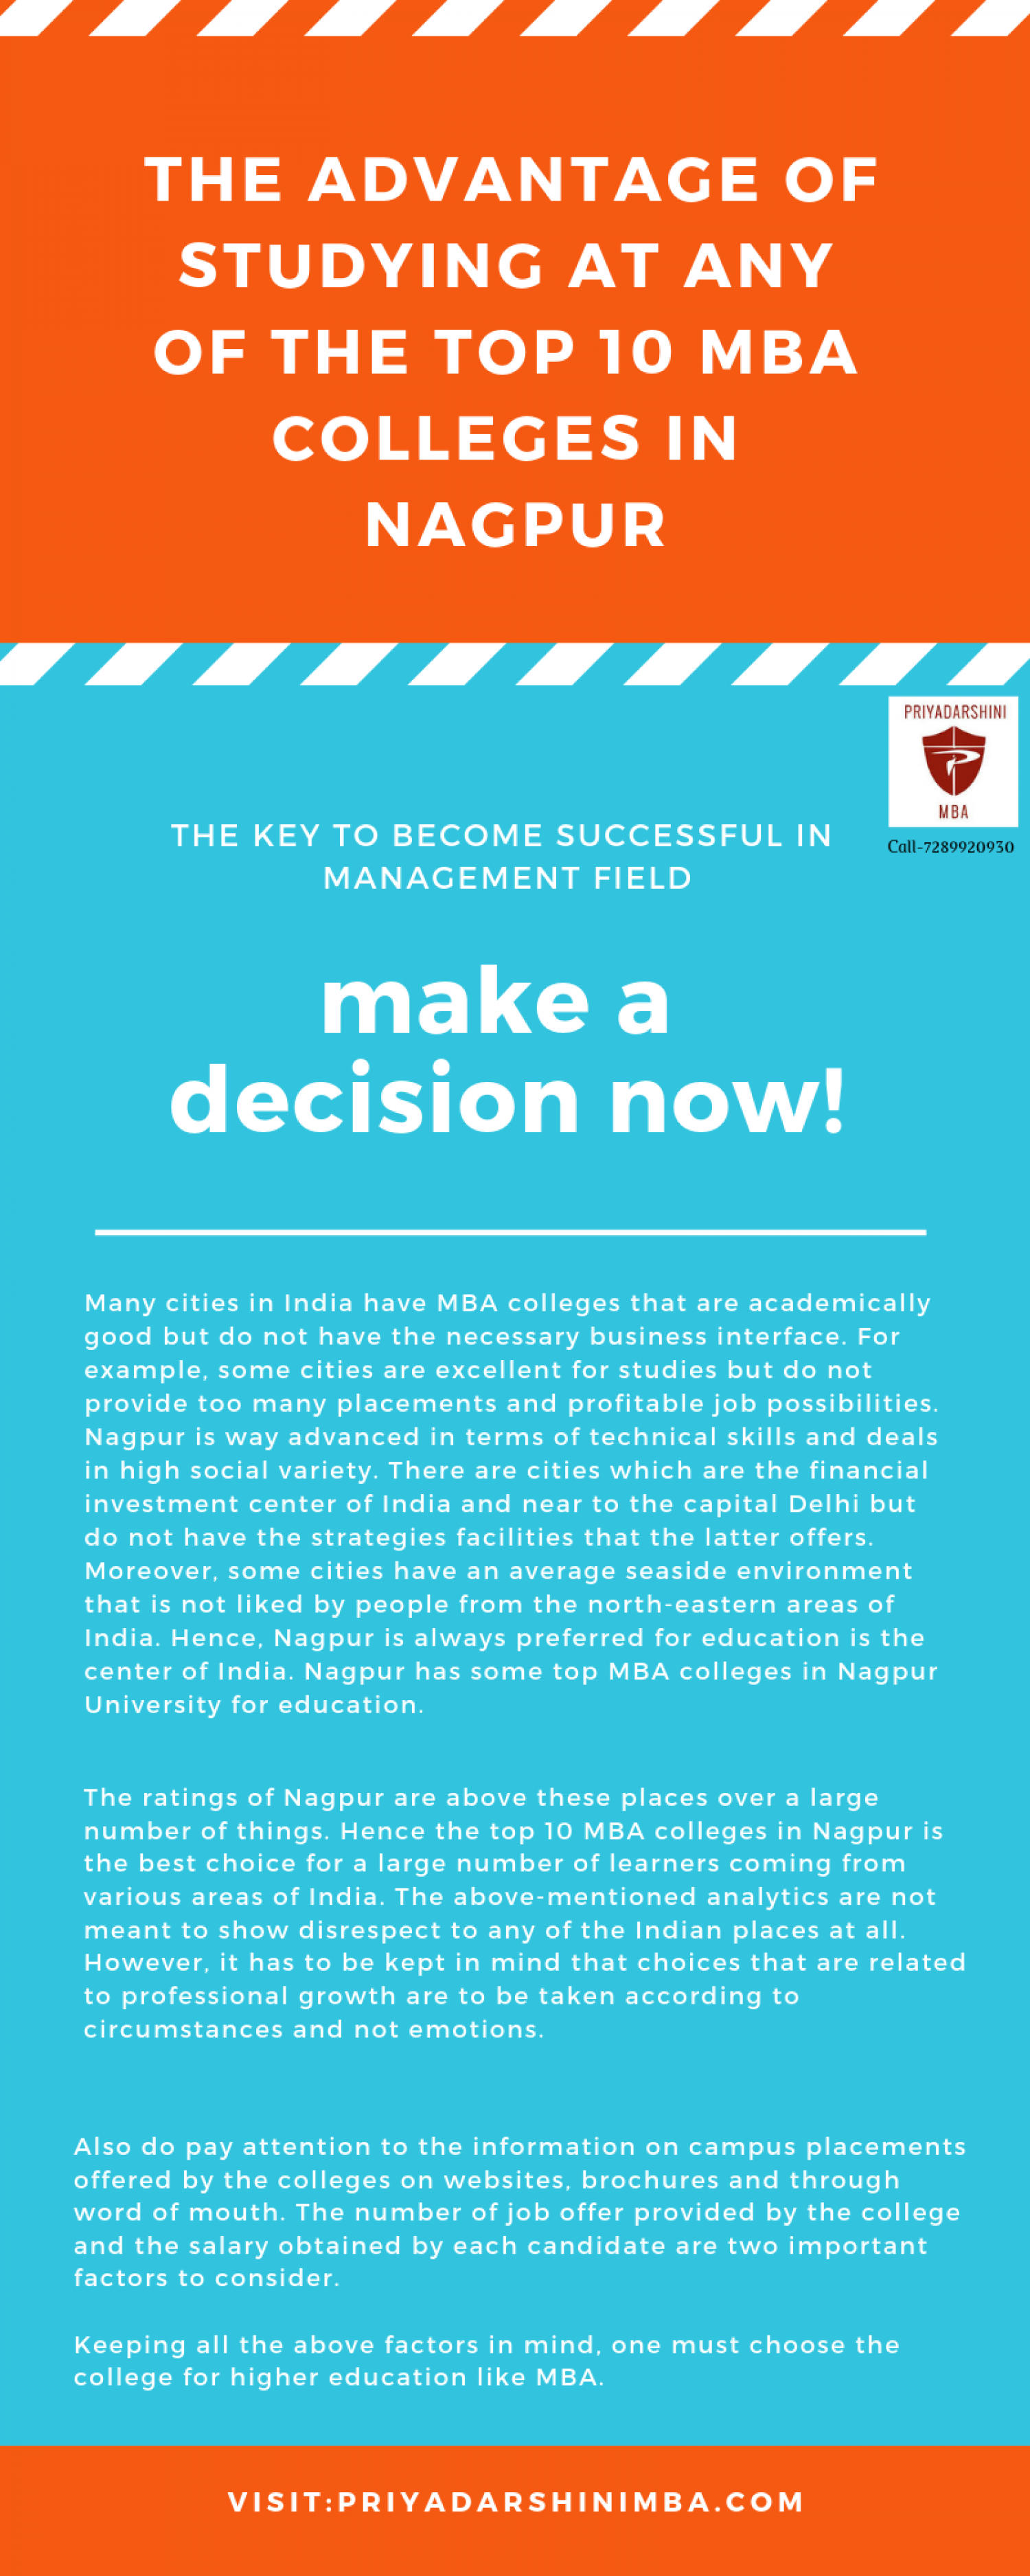 Top Mba Colleges In Nagpur University Infographic With Images Mba School Application Business Management Degree